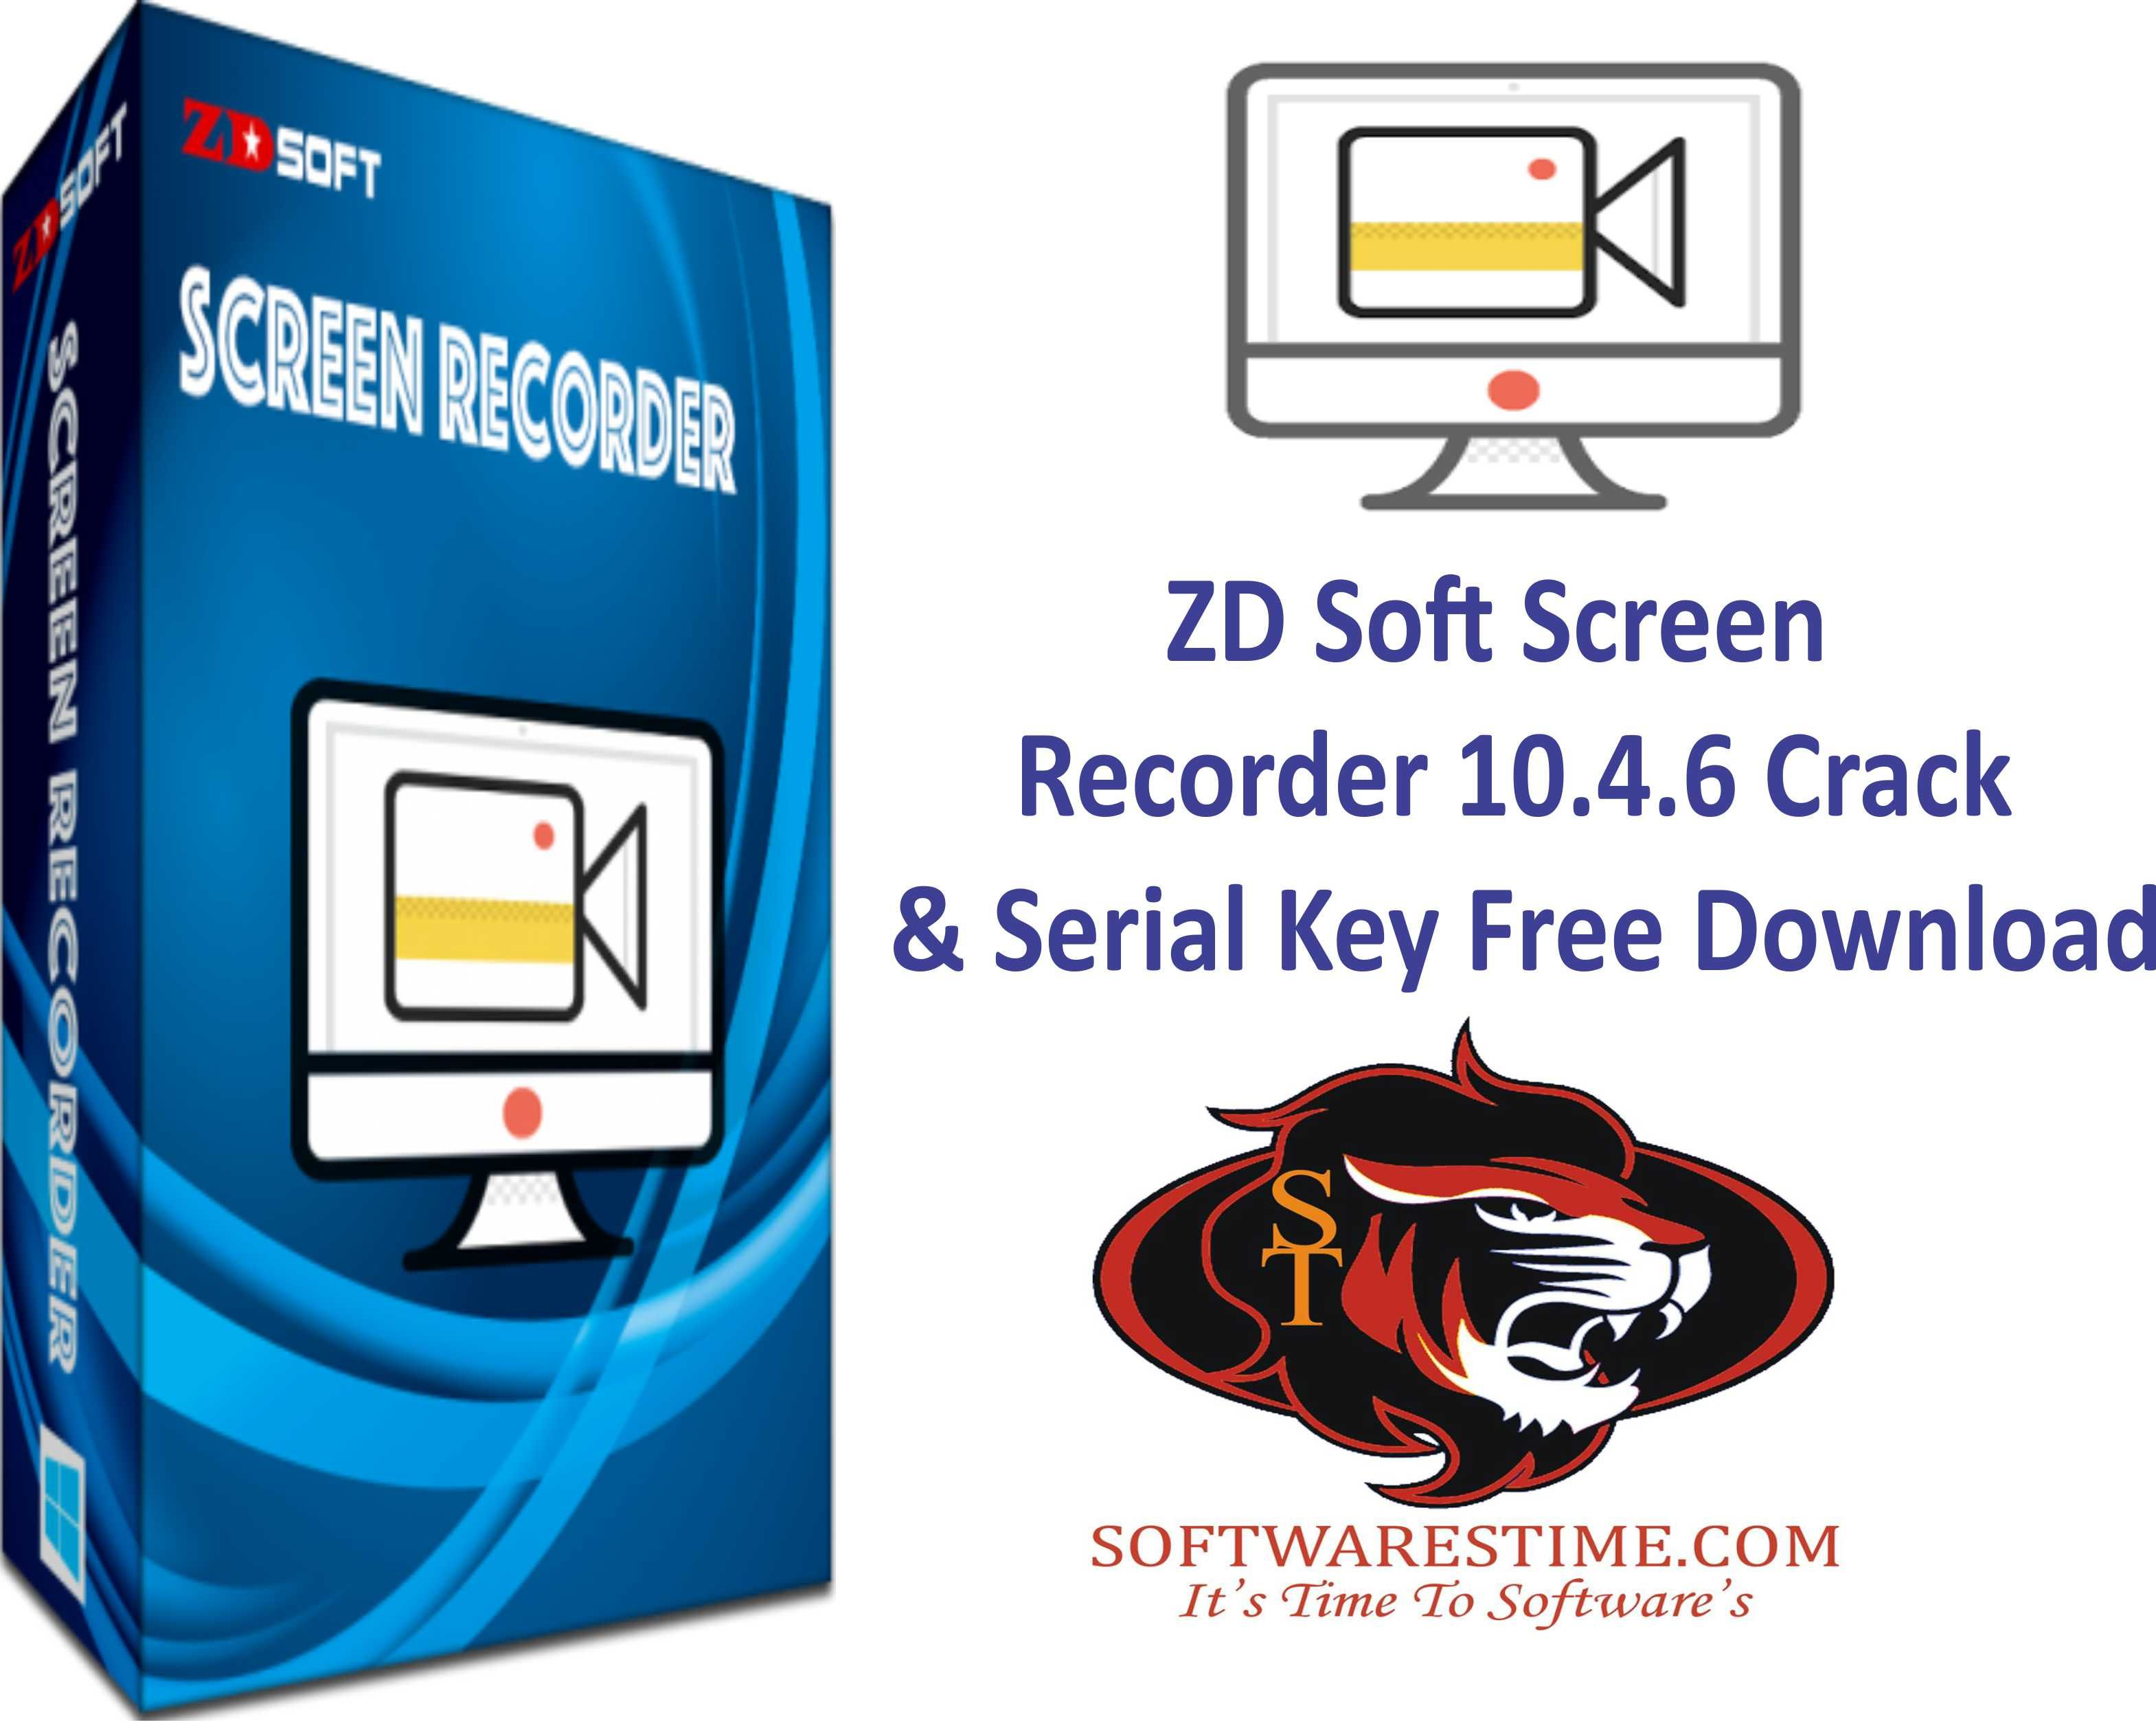 zd soft screen recorder 10.1.1